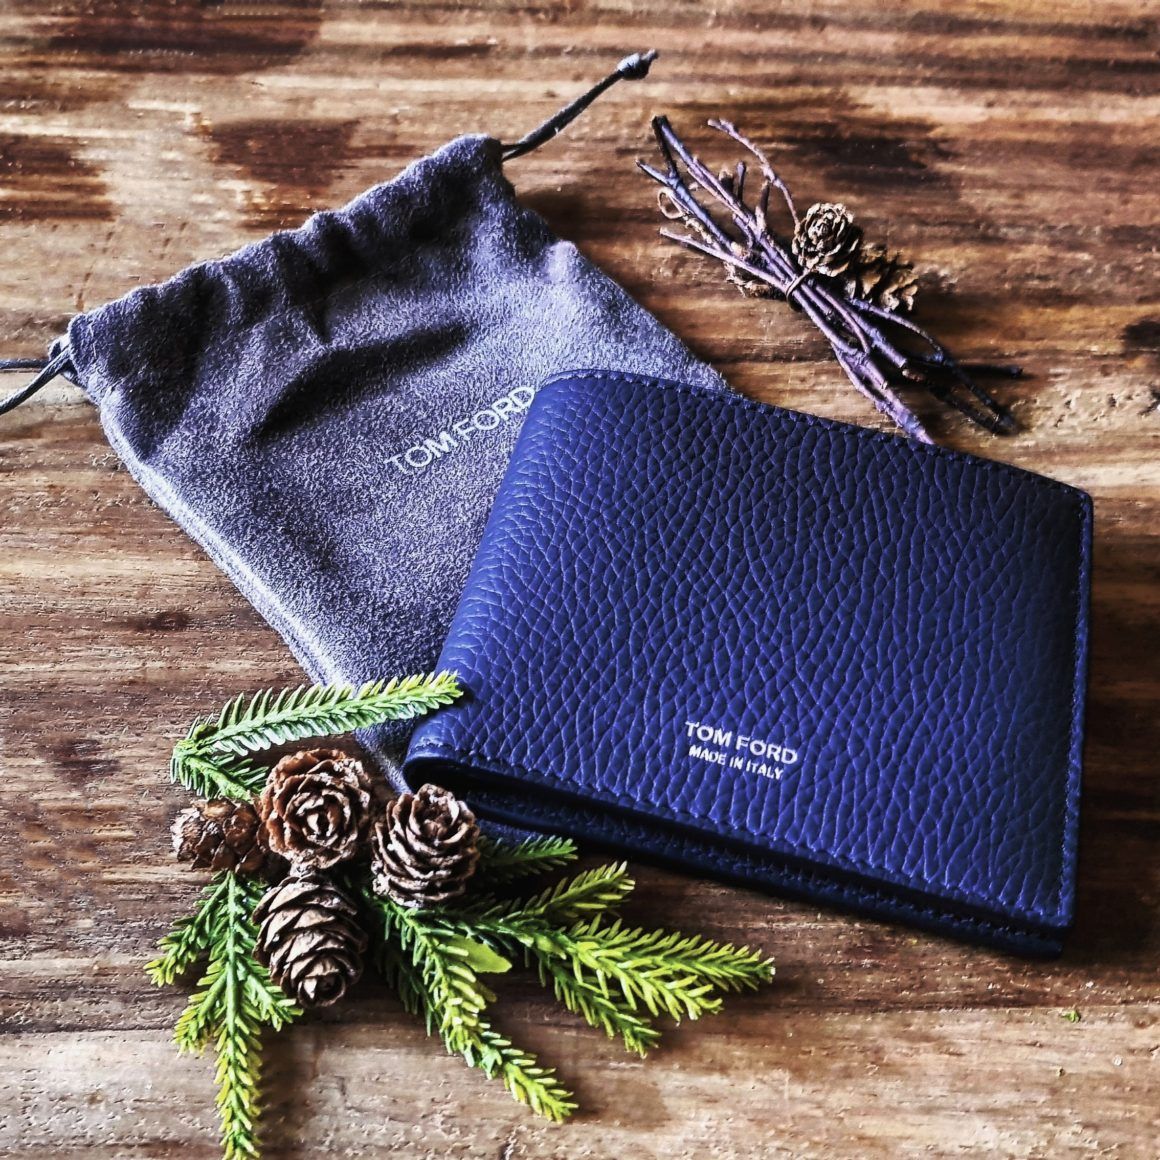 A concise guide to Christmas gifting TOM FORD wallet